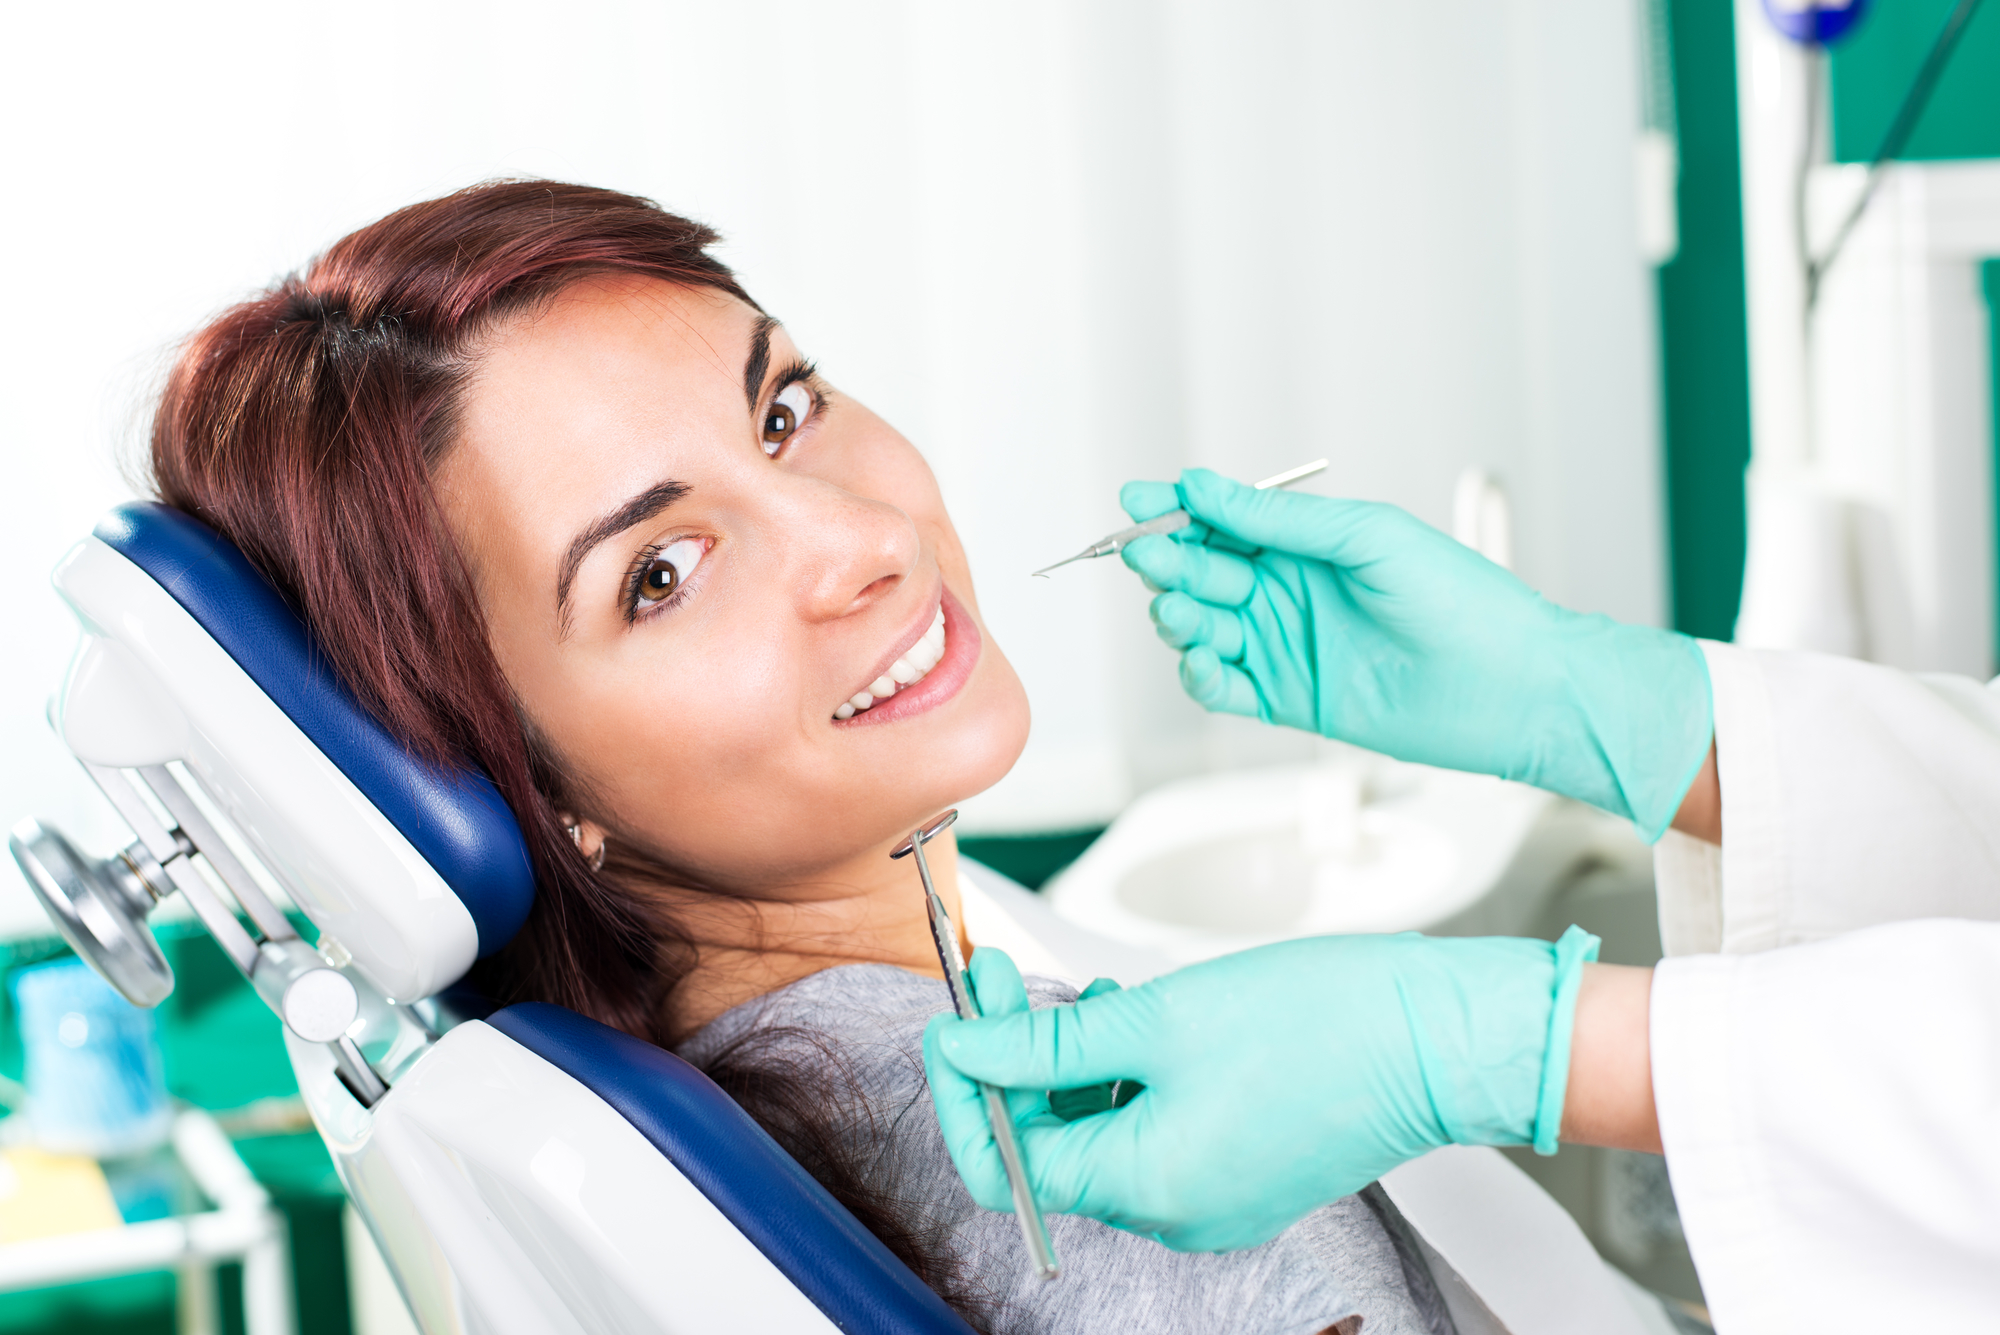 who offers oral cancer screening coral springs?